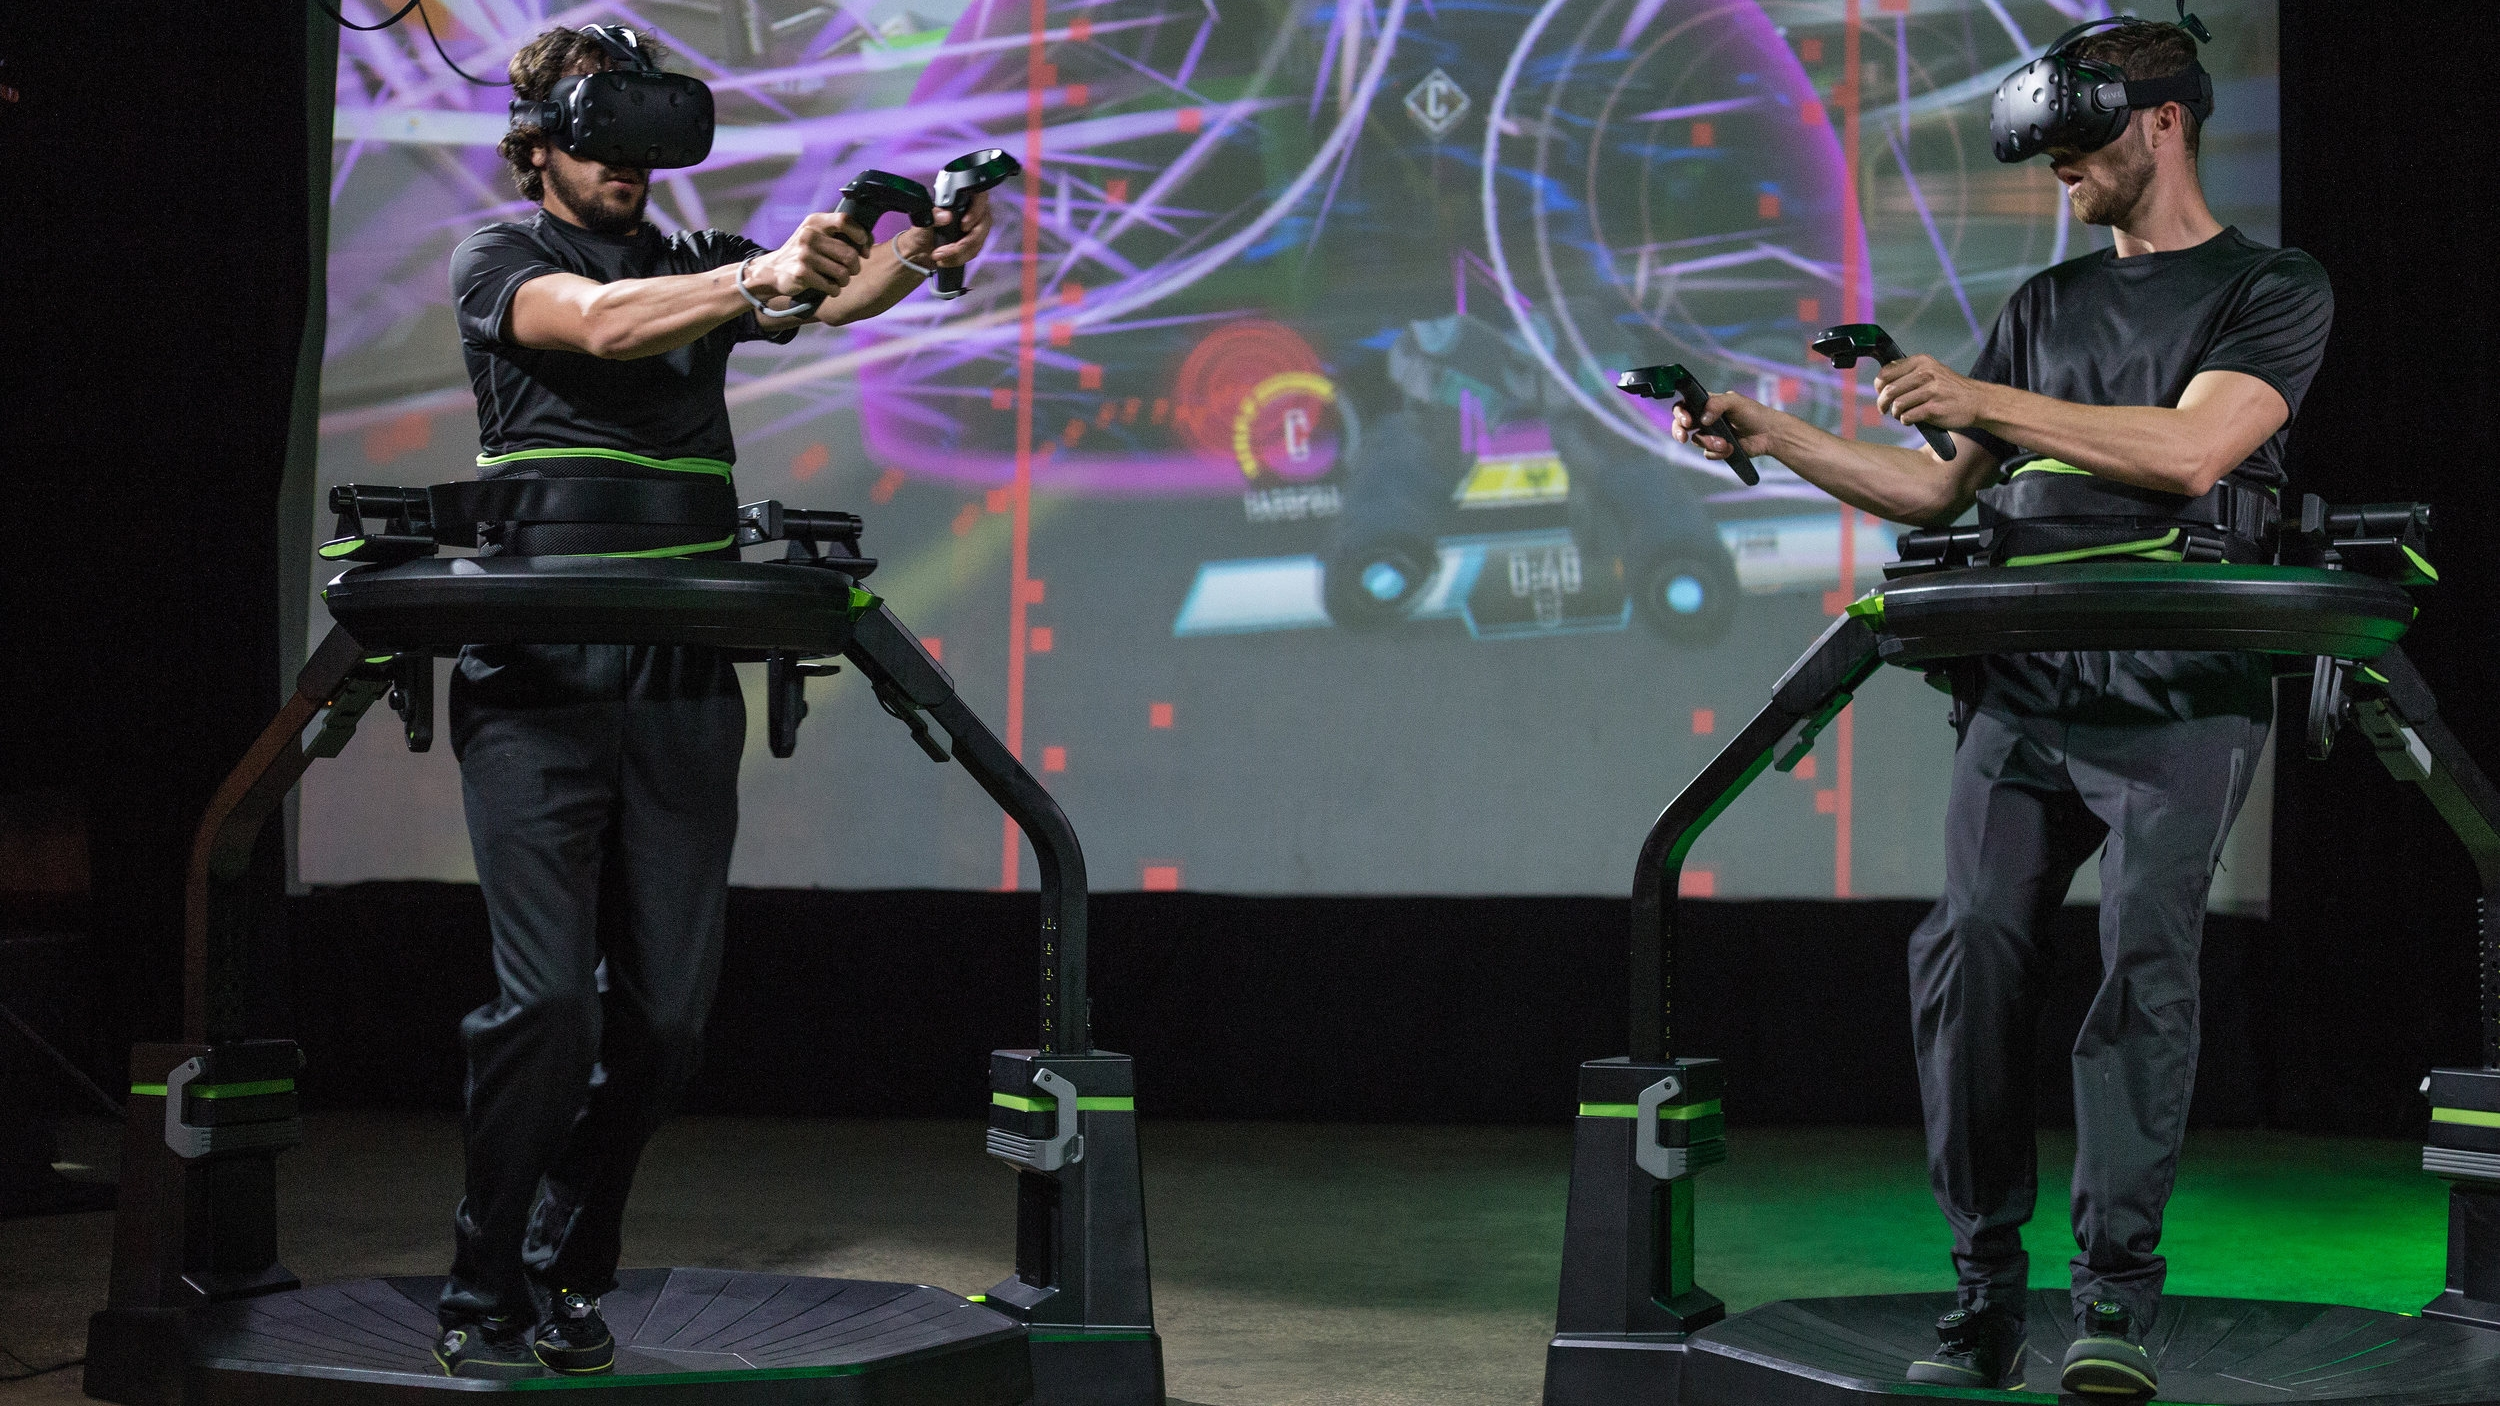 ... played in Virtual Reality on the  Virtuix Omni  Motion Platform.